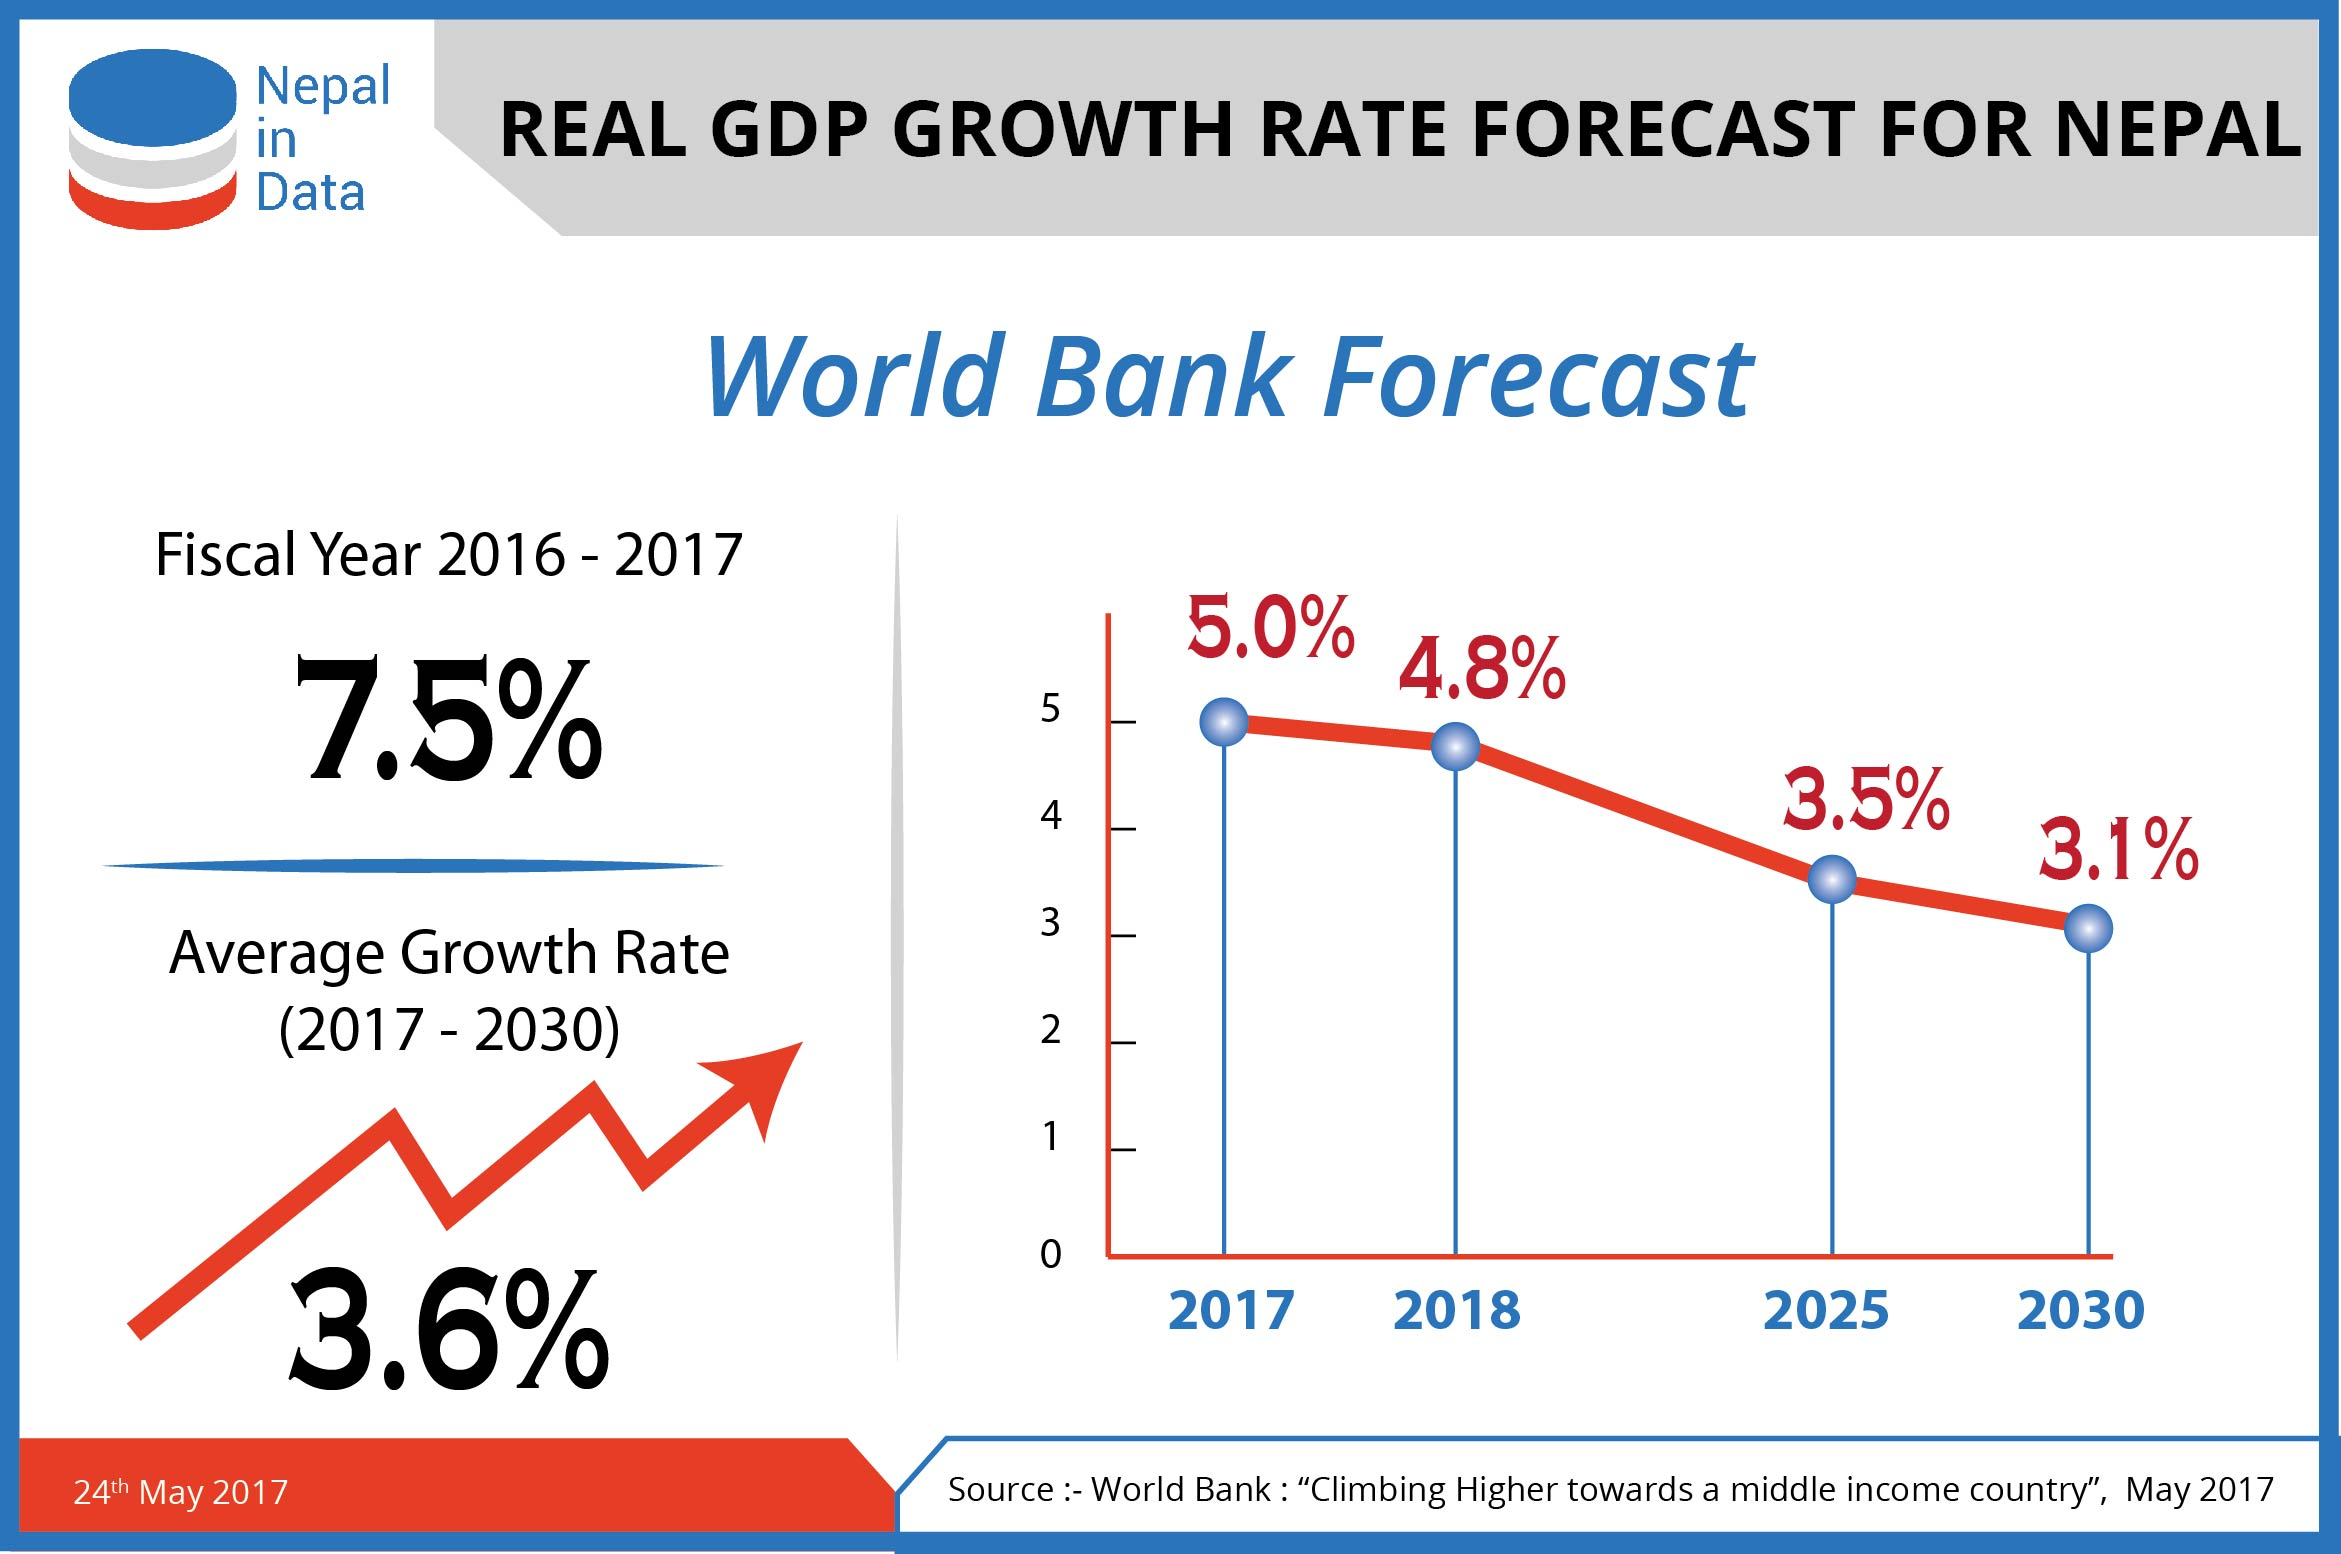 Nid the world bank has forecasted gdp growth rate of 75 for fy 201617 but has projected an average growth rate of 36 between the year 2017 30 nvjuhfo Images